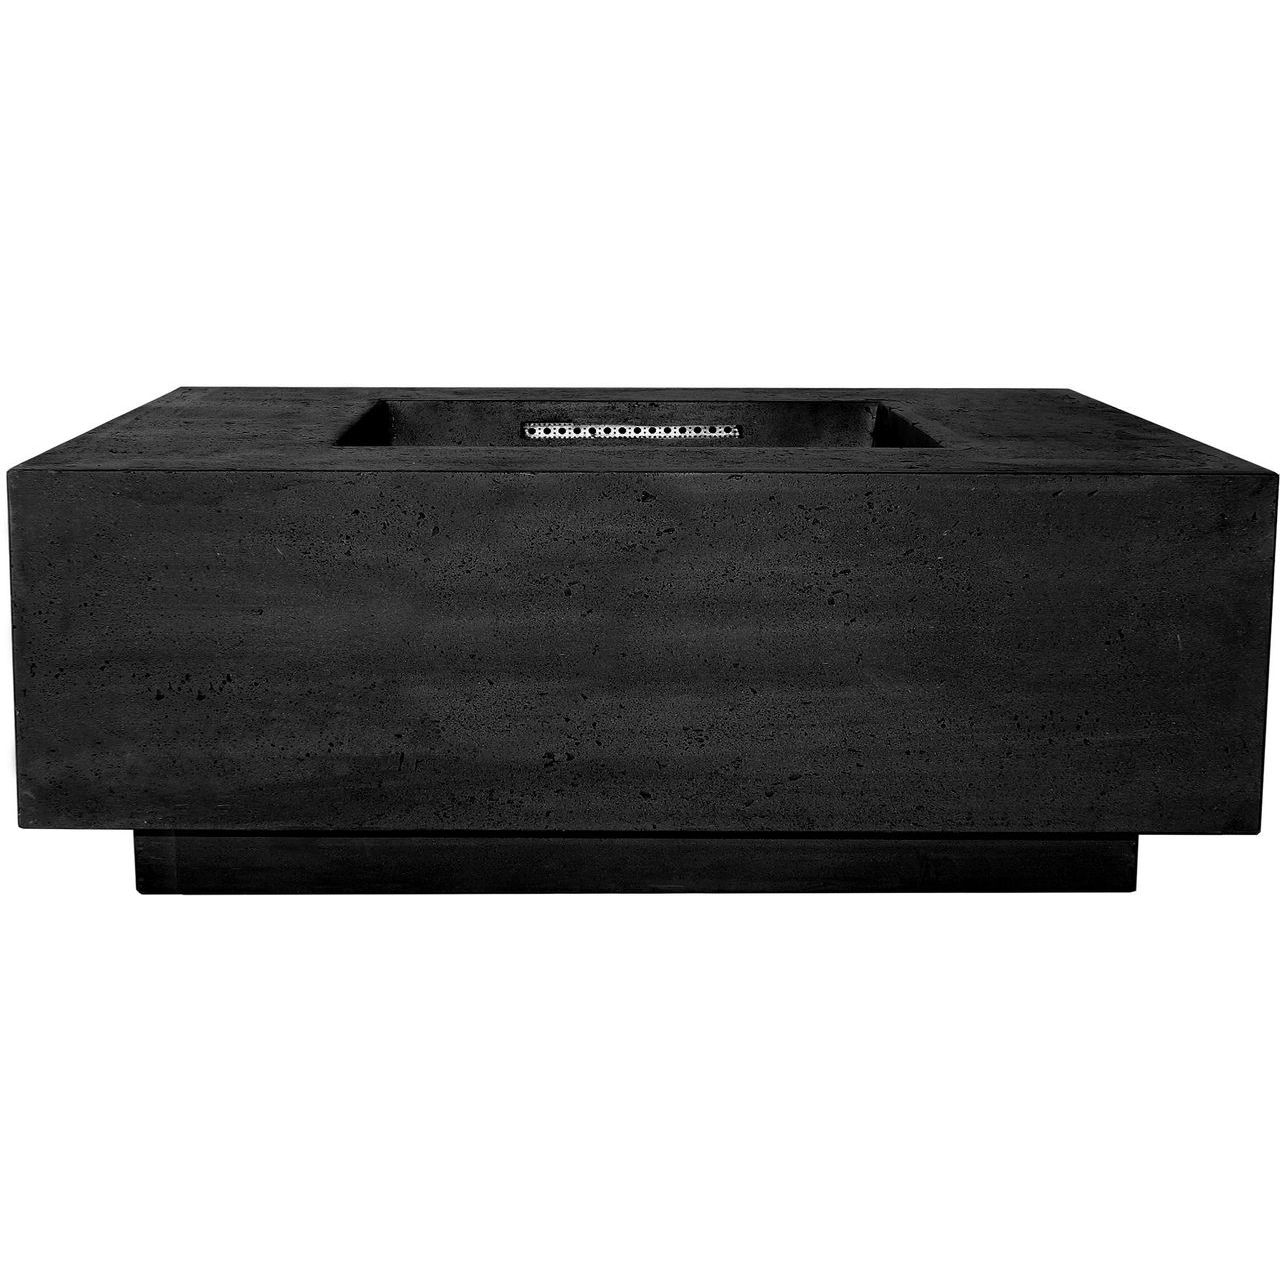 Prism Hardscapes Tavola 3 Fire Table in Ebony - NG